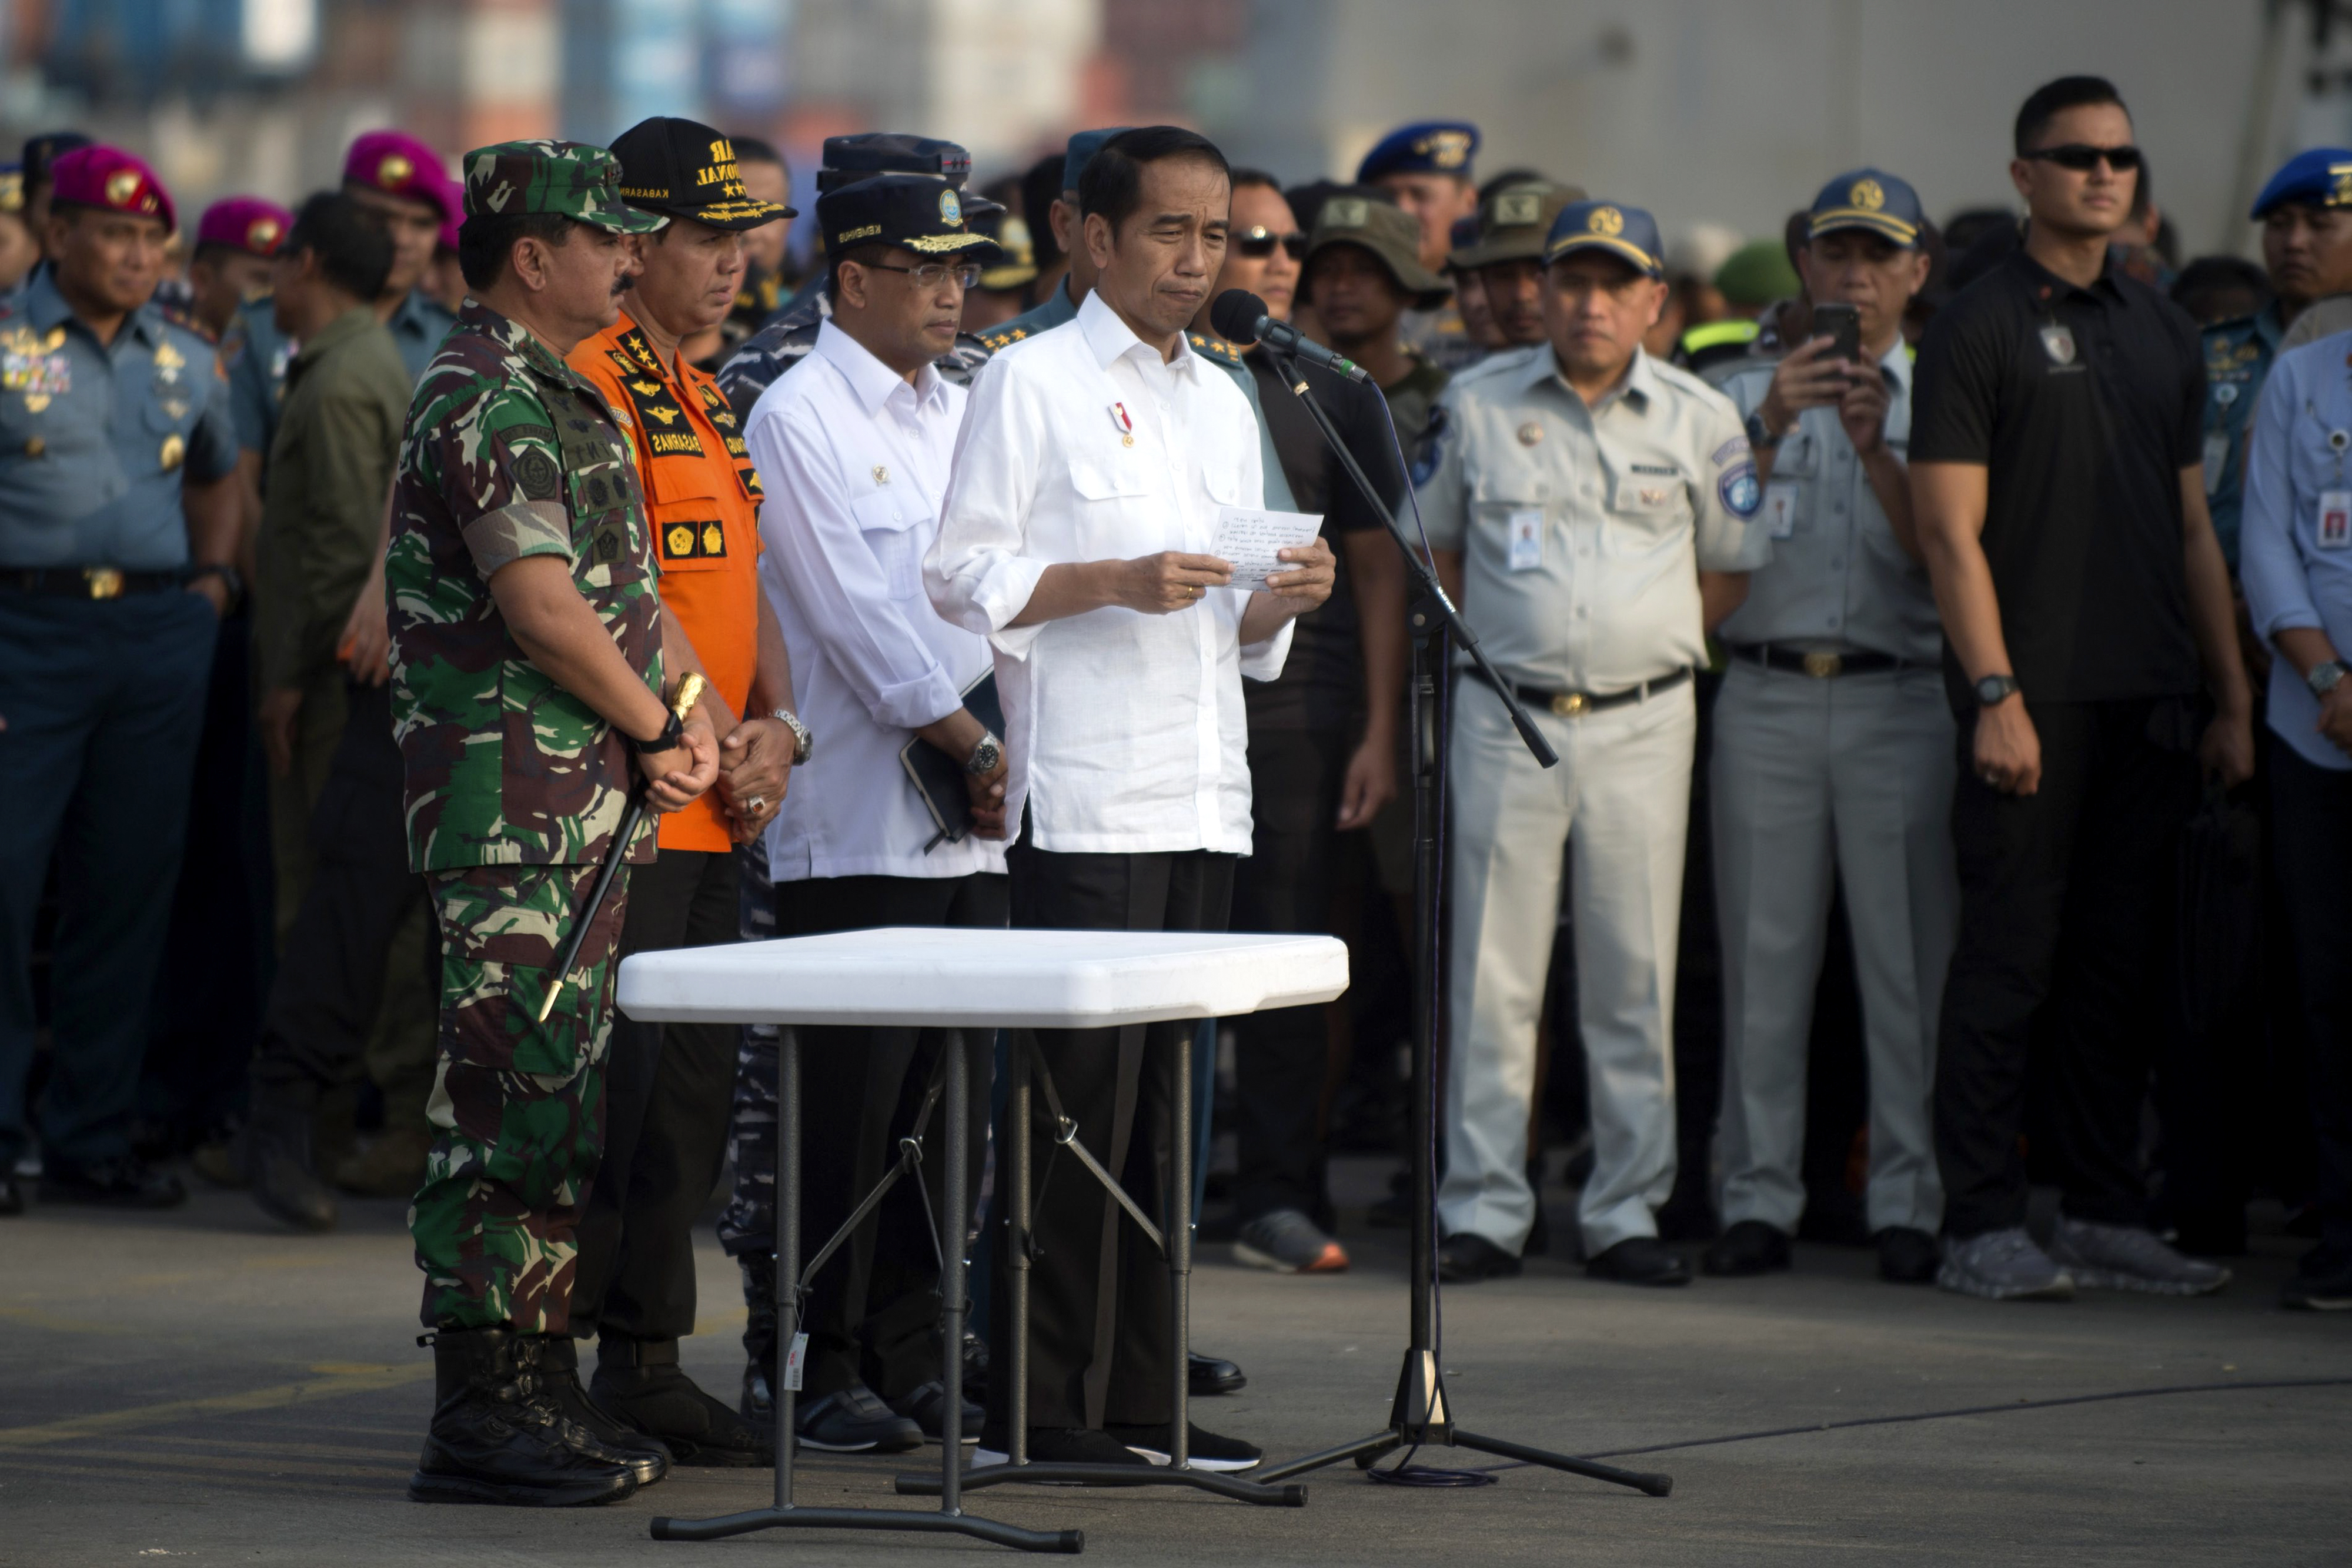 ac5e2872cb750 Offbeat: Crashed Jet's Elusive Audio May Hold Key to Indonesian ...